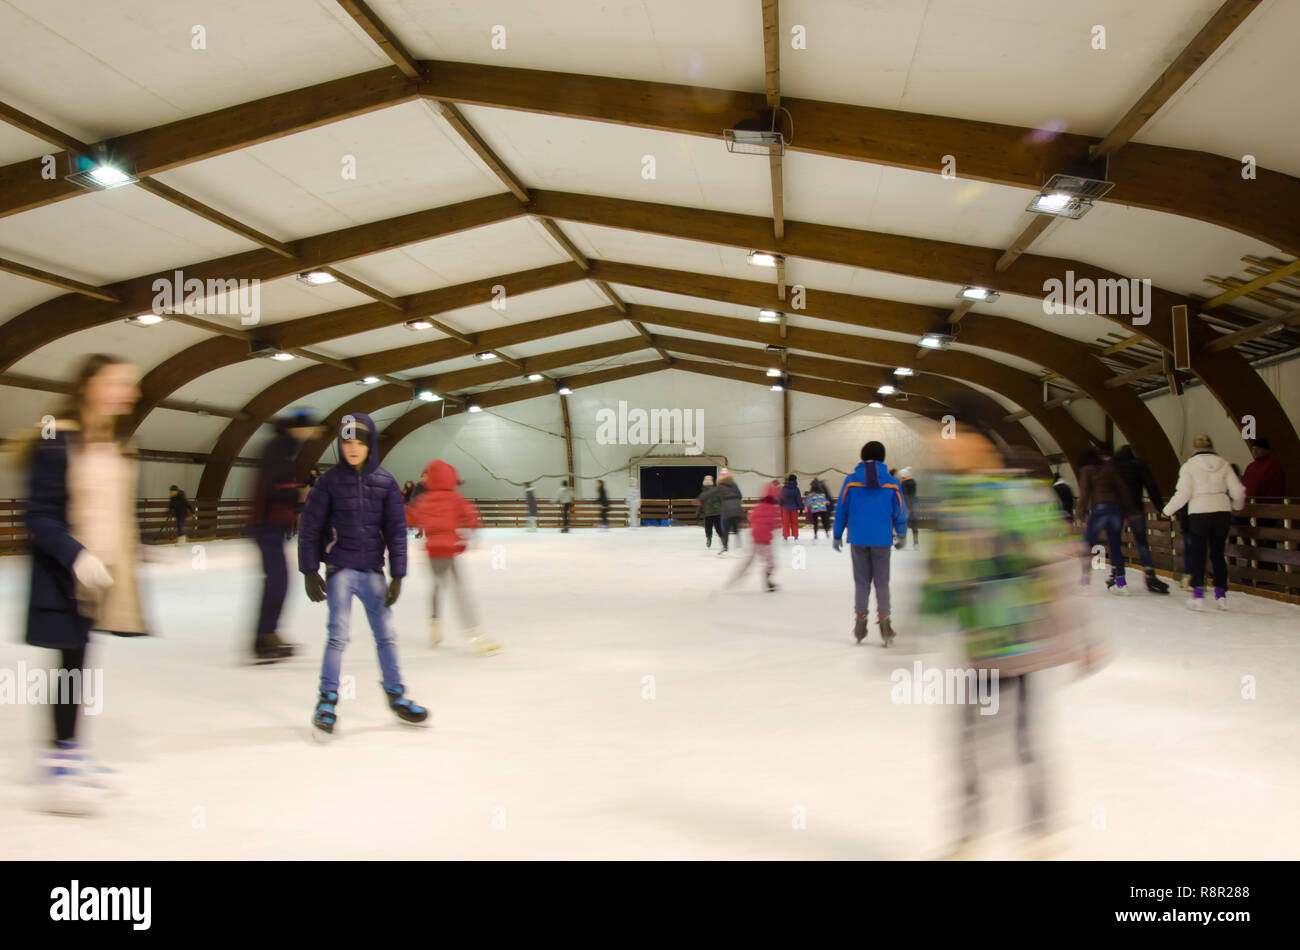 Nis, Serbia, February 11, 2017:winter sport,indoor, blurred people on skating rink,motion, long exposure. People, friendship,sport and leisure concept - Stock Image